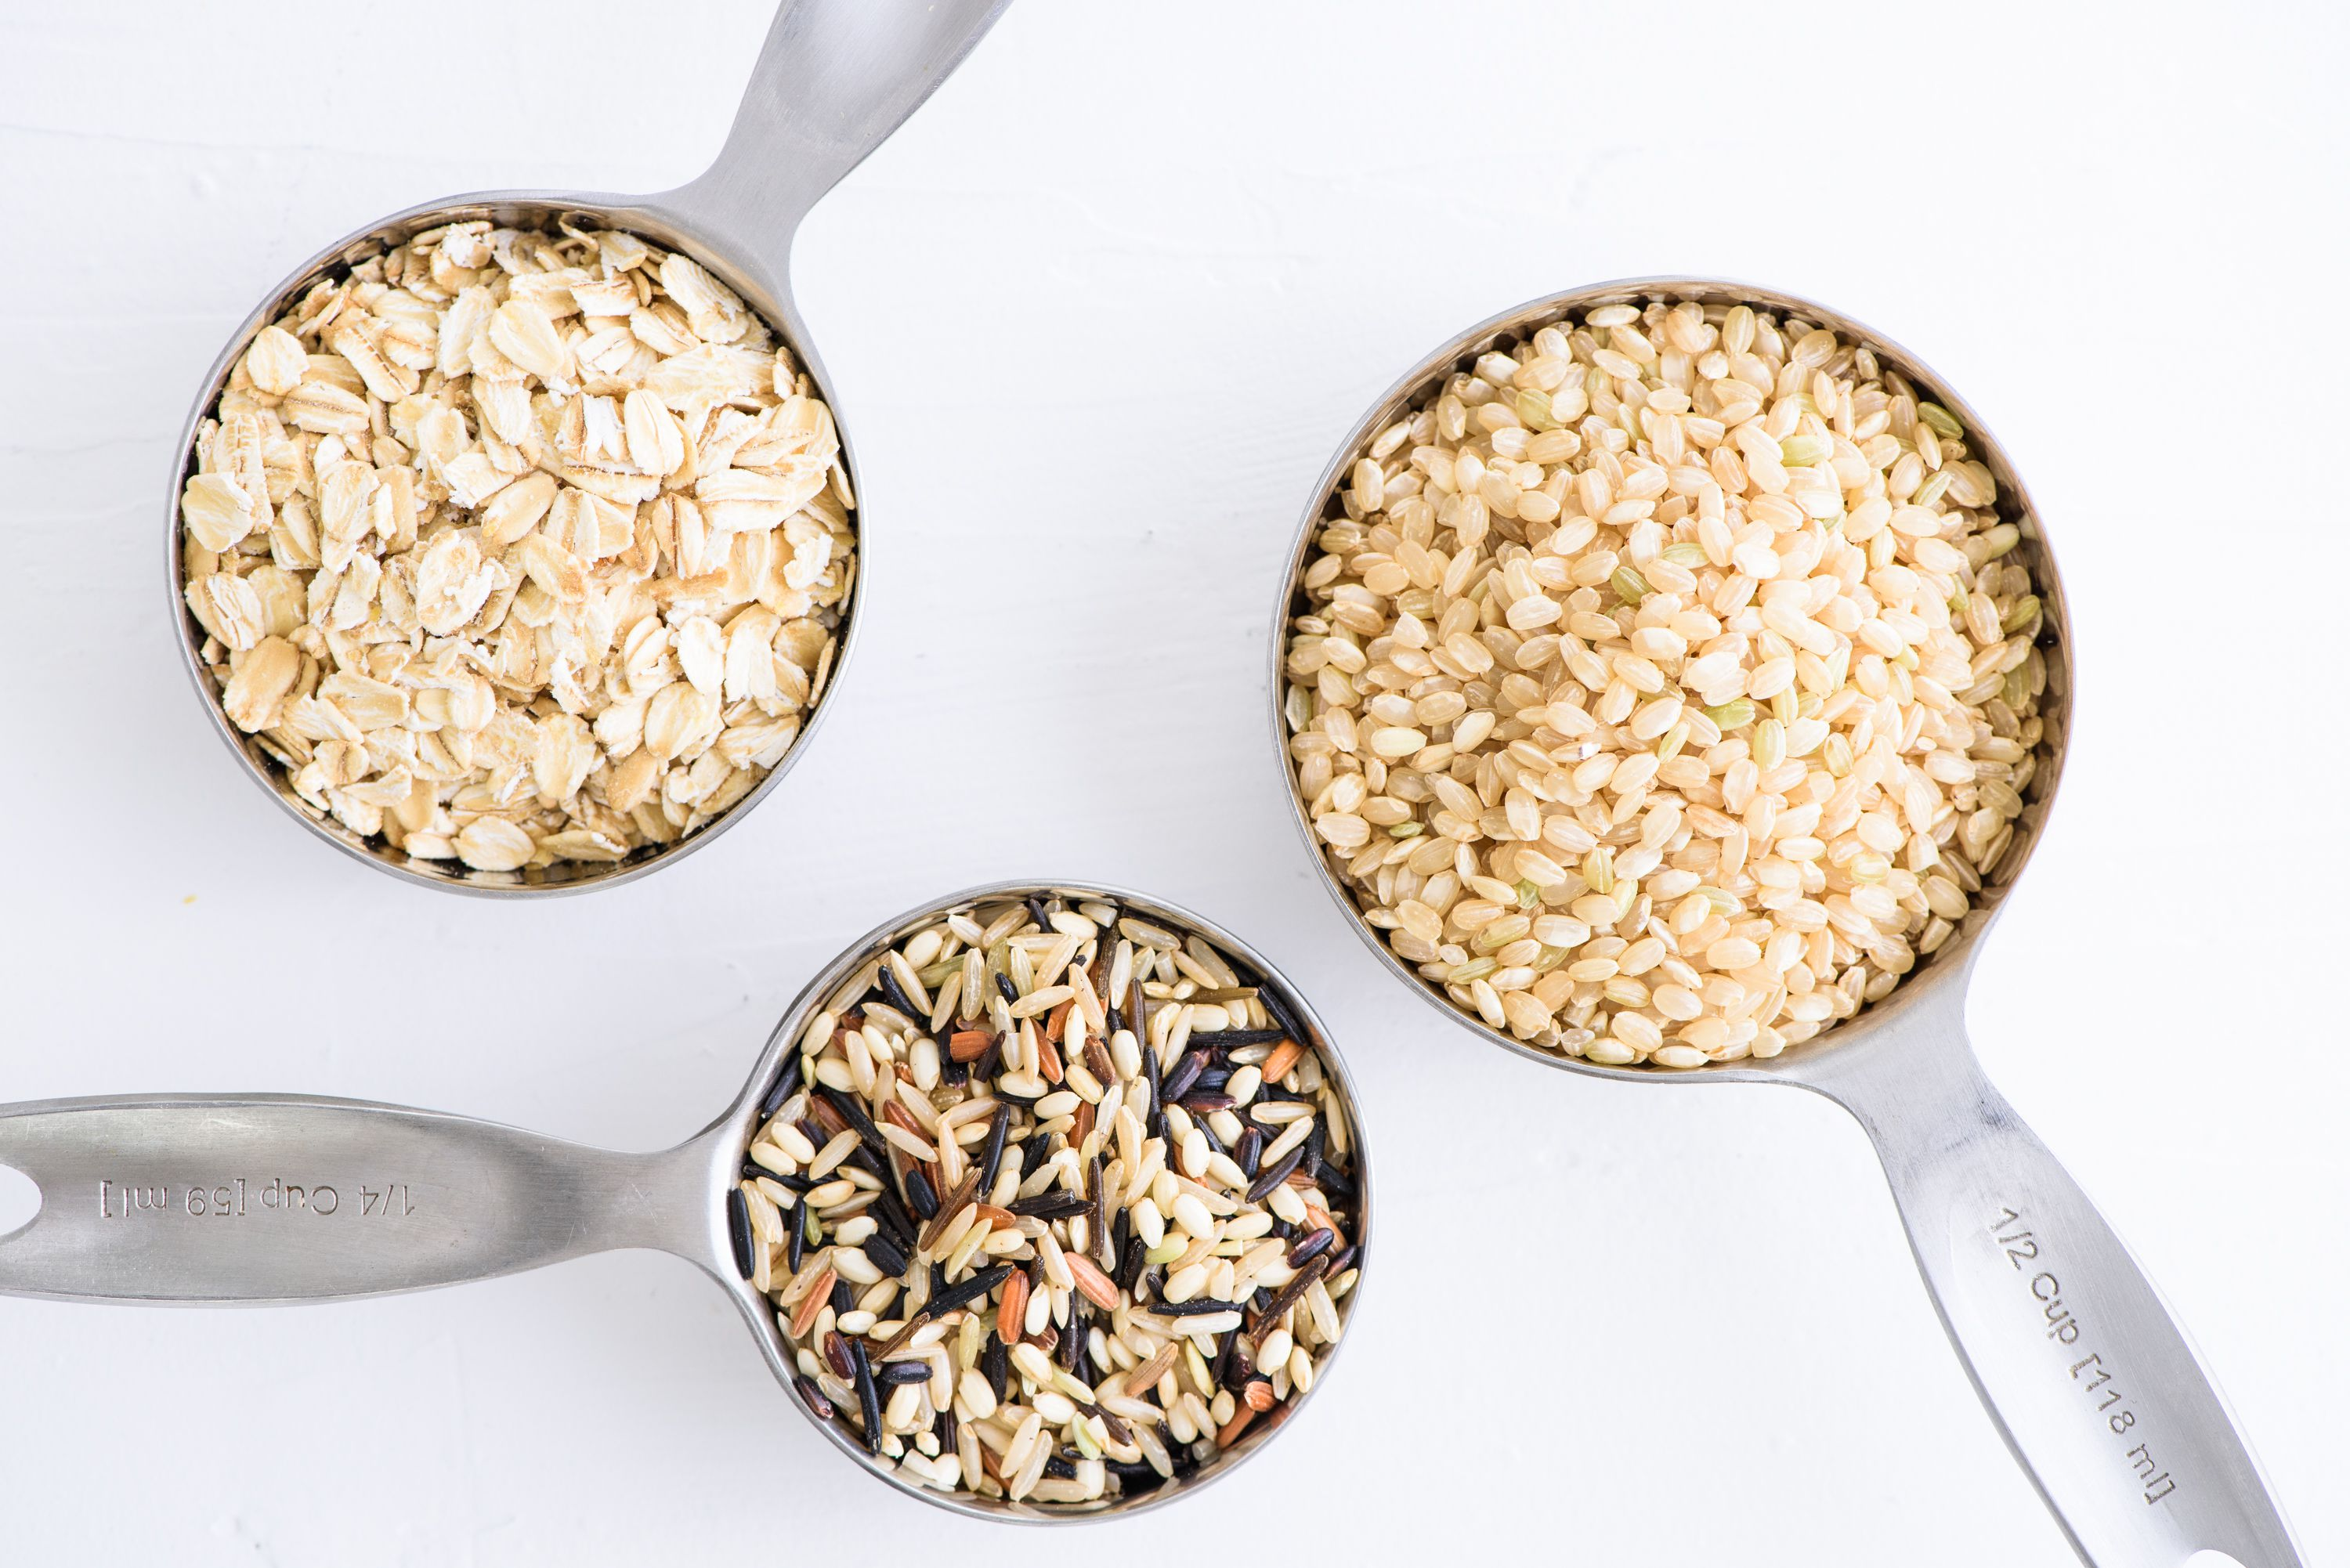 Grains and Starches Allowed on the South Beach Diet